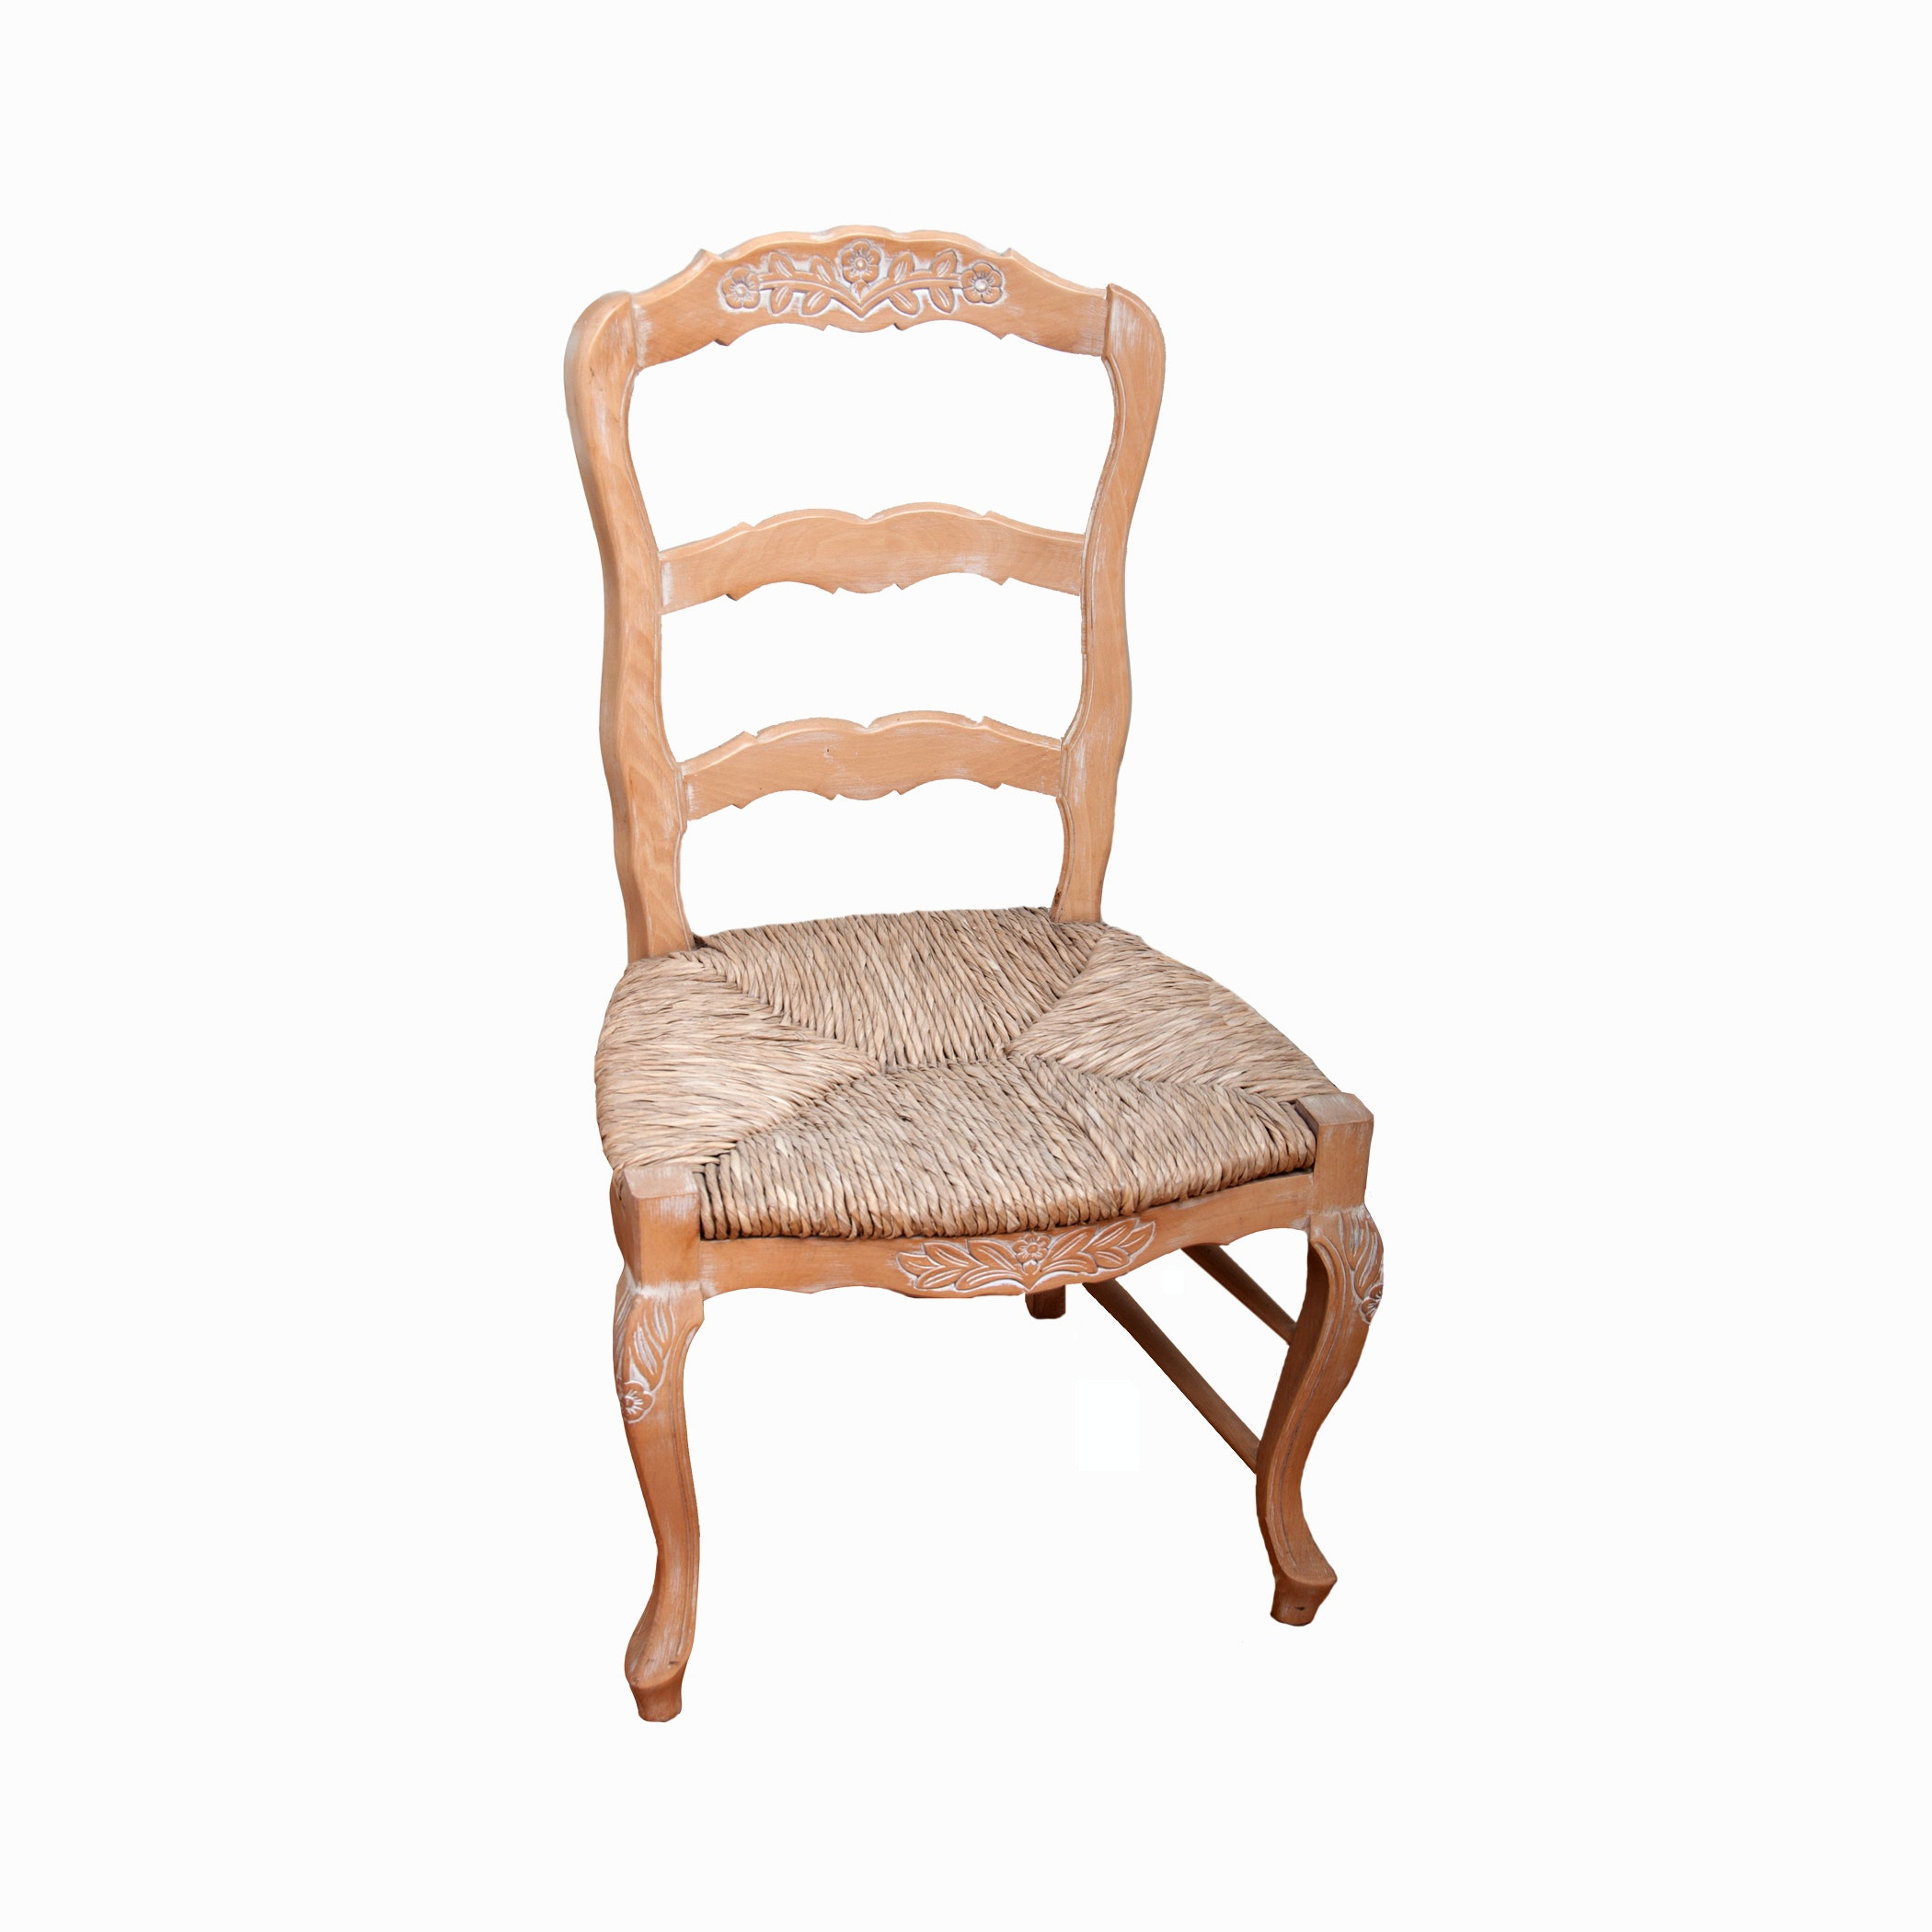 Contemporary Provencal Style Ladderback Chair